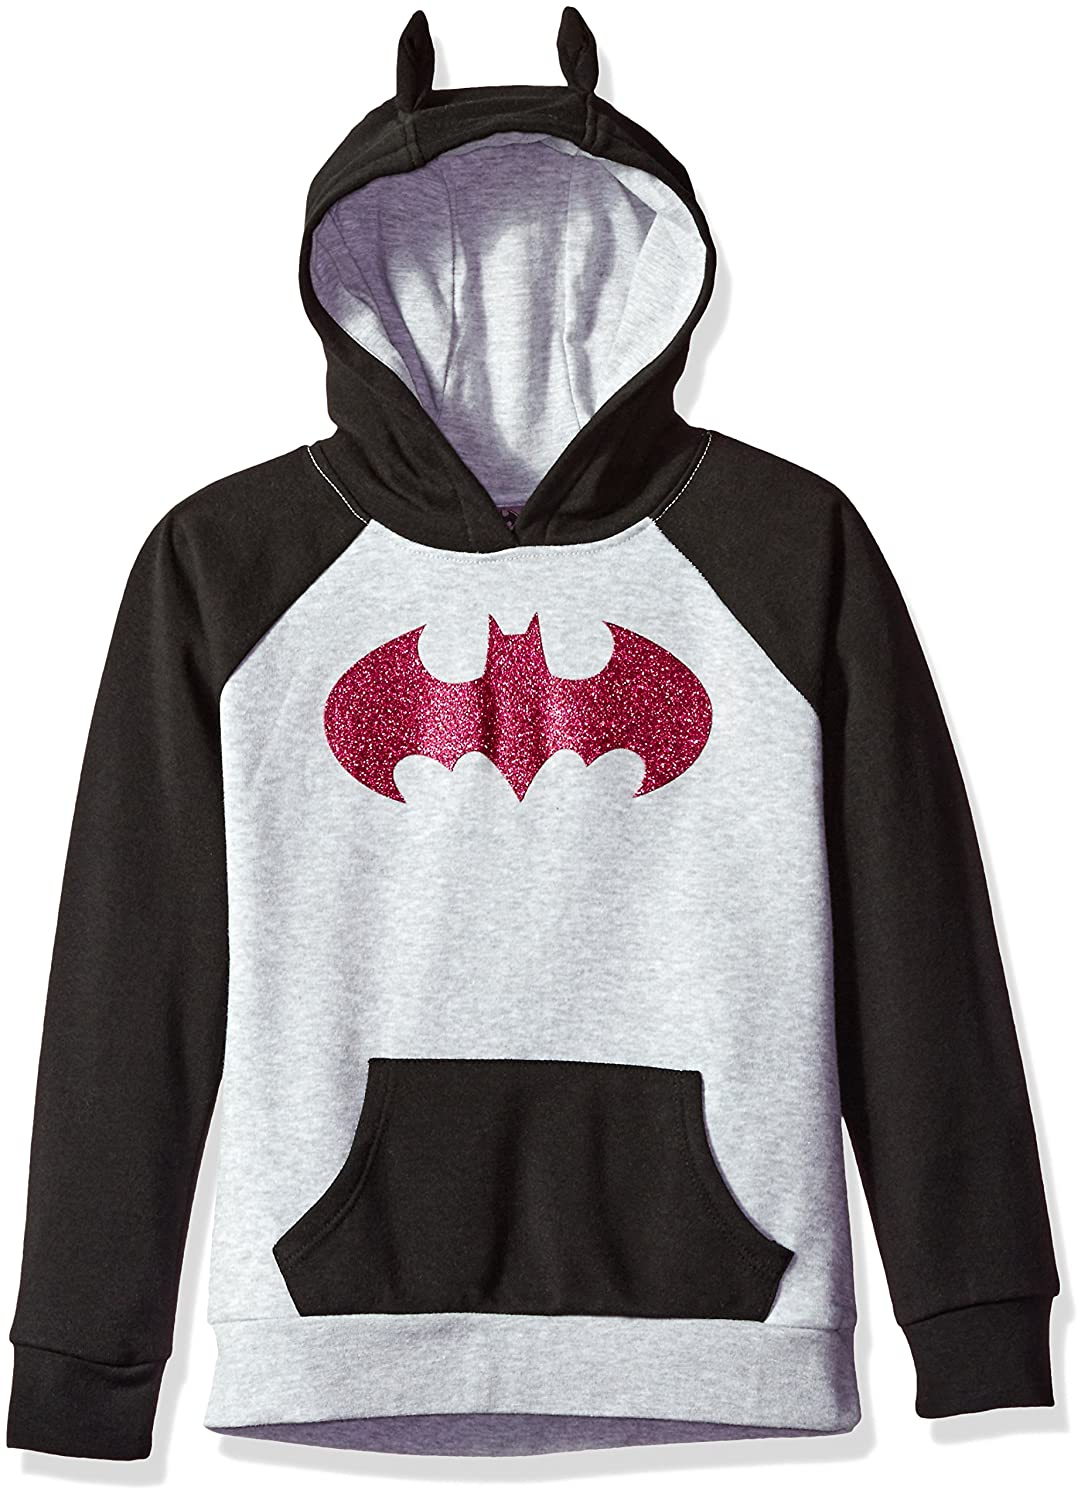 Warner Bros. Girls' Batgirl Cosplay Hoodie Jerry Leigh Character Apparel ST19405U1786B BLU